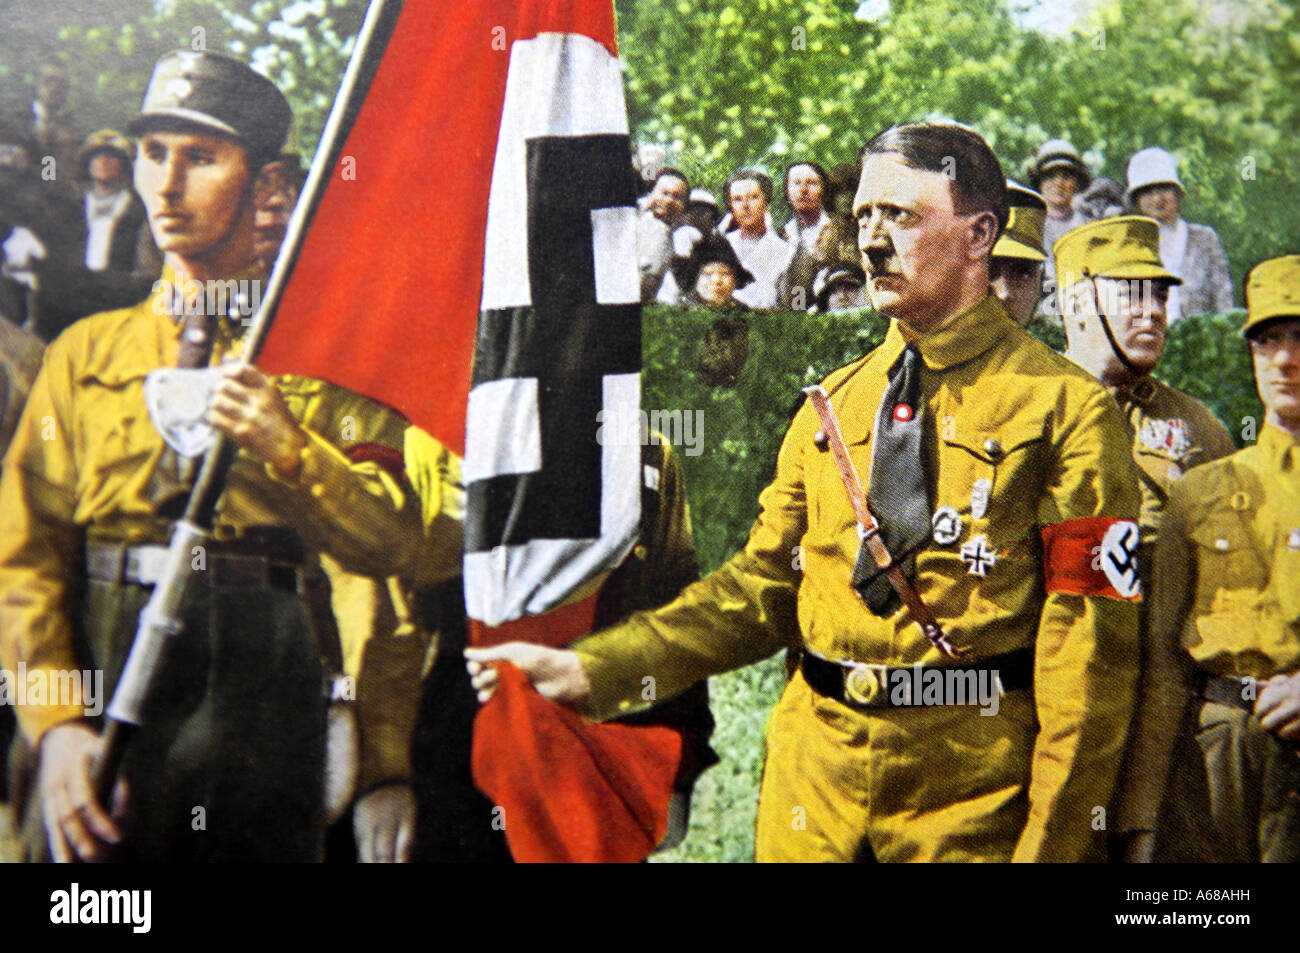 an analysis of the effects of adolf hitler and the nazi party in germany Adolf hitler (1889 - 1945)  rise of the nazi party hitler  the onset of the great depression with its devastating effects on the middle classes helped hitler to .